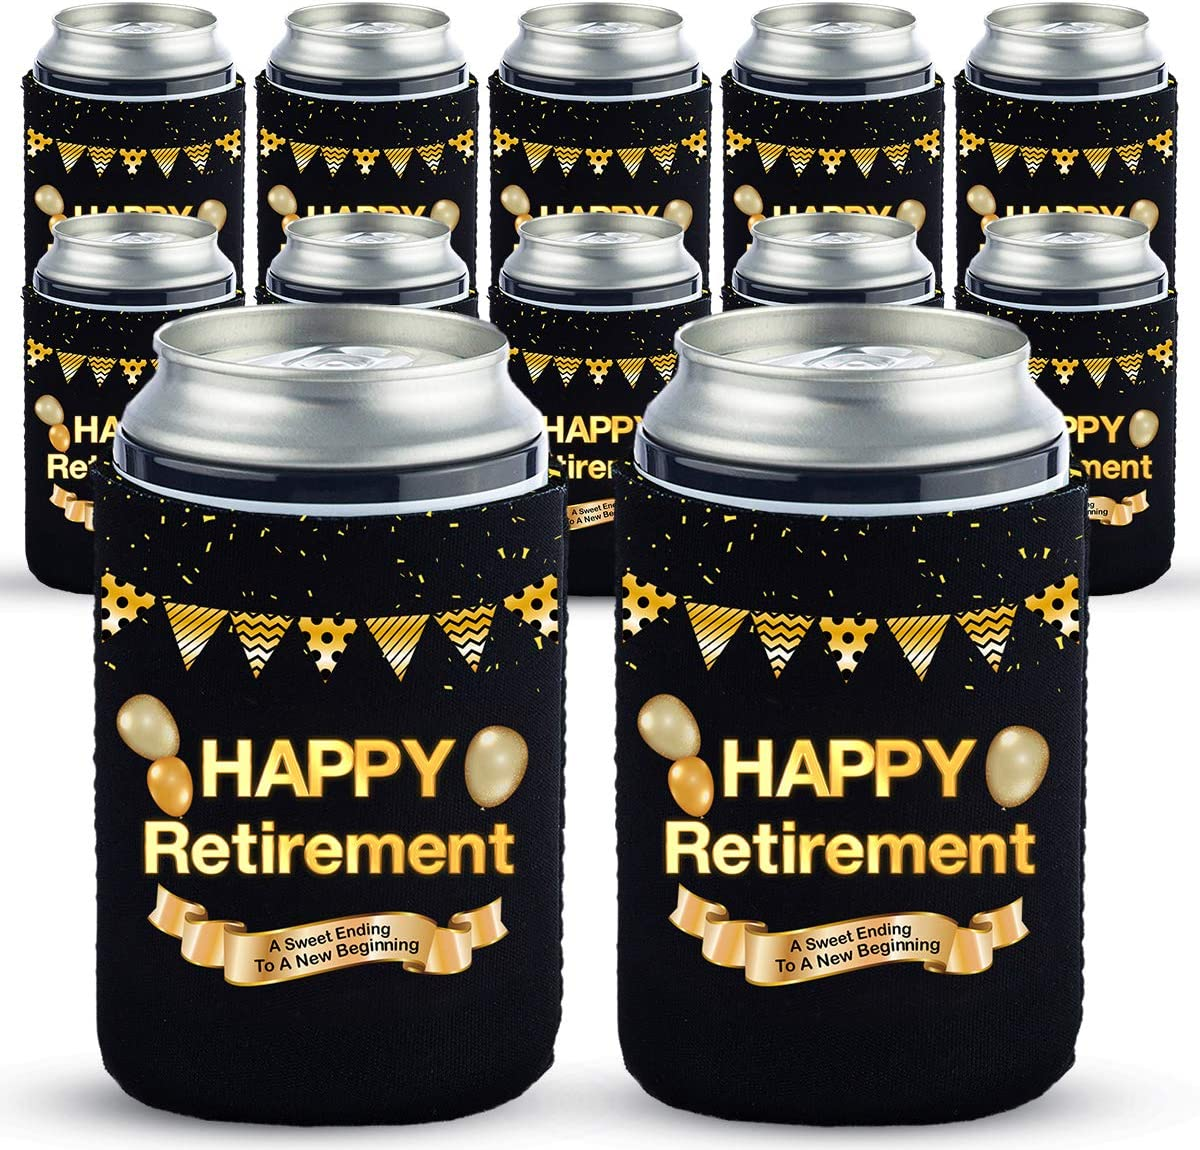 Funny Retirement Can Coolers Gifts for Men And Women-12 OZ Collapsible Neoprene Can Beer Bottle Beverage Cooler Cover Insulator Holder Sleeve for Cola Beer Soda (12)